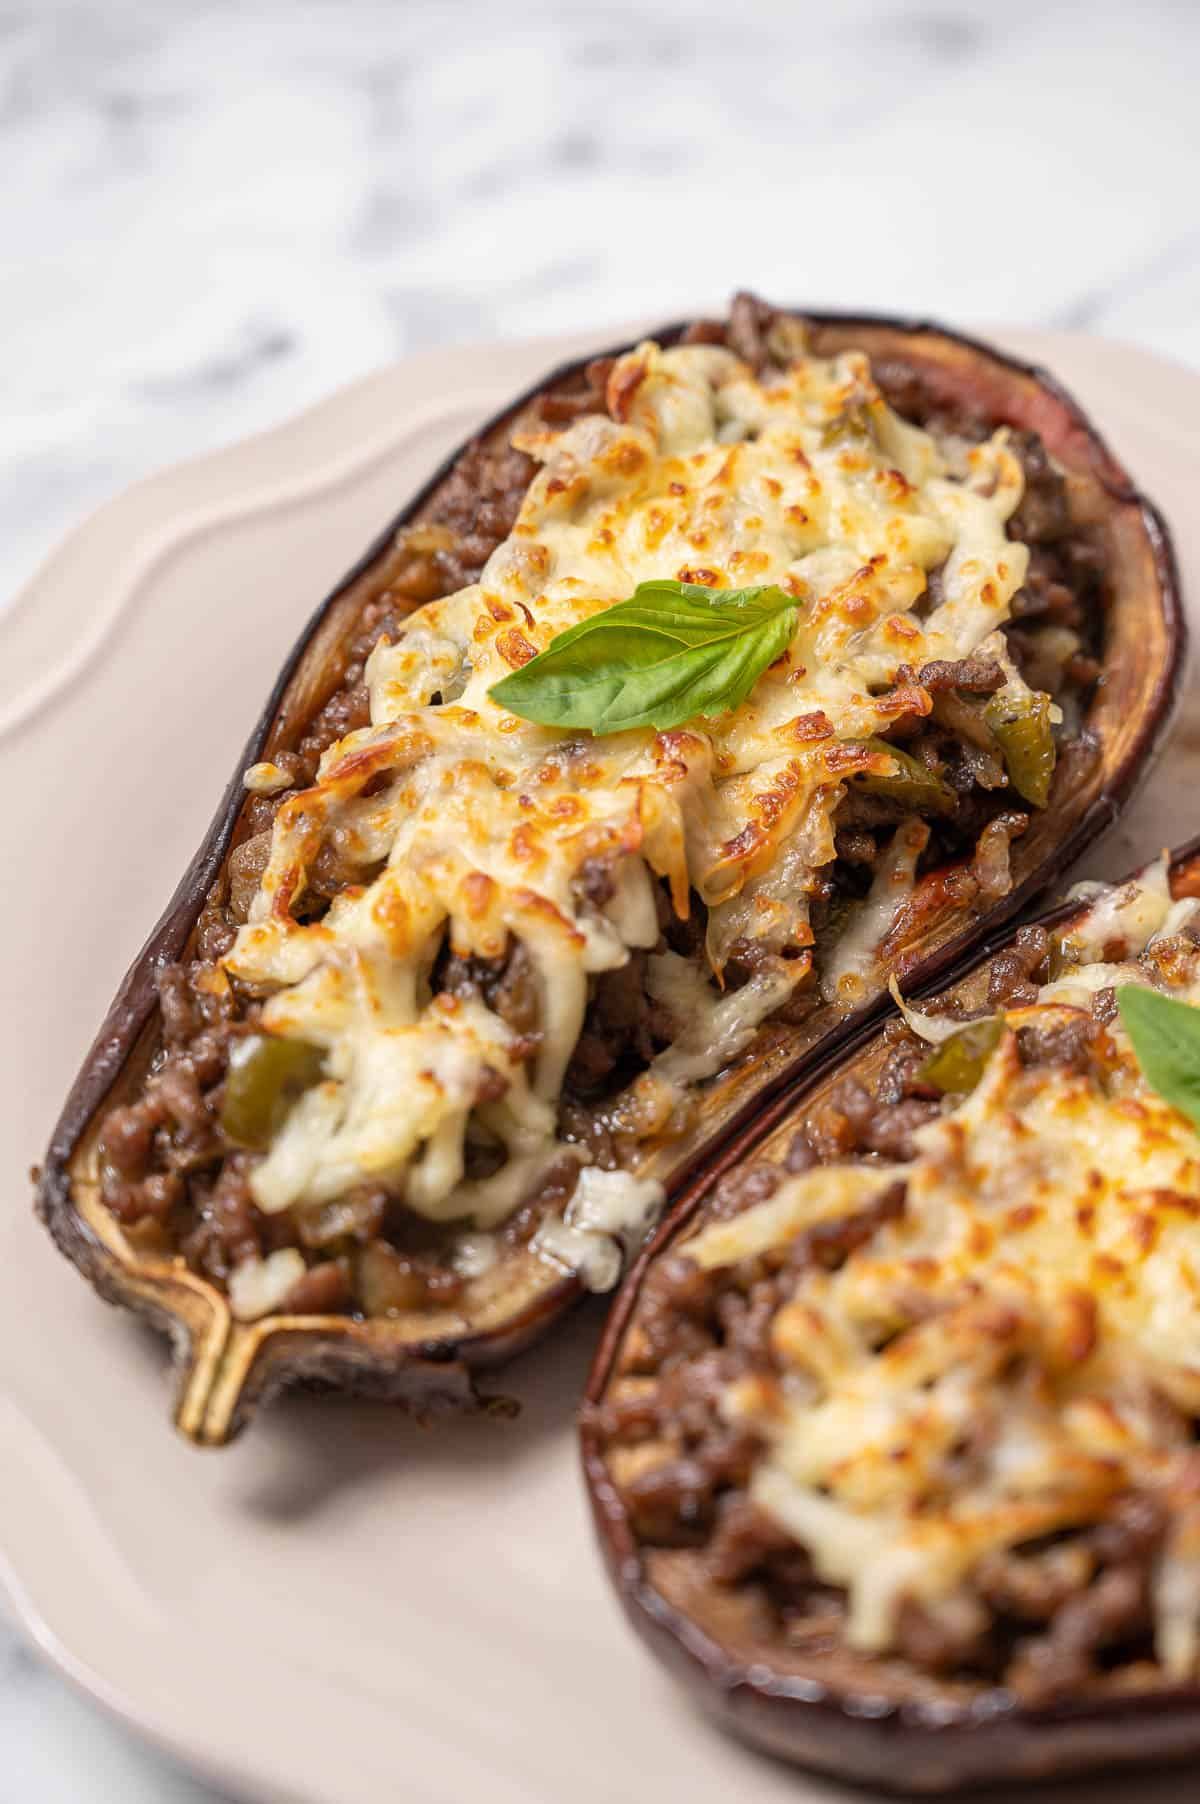 Berenjenas rellenas or Spanish stuffed eggplant on a white dish. Stuffed eggplant with meat and cheese.